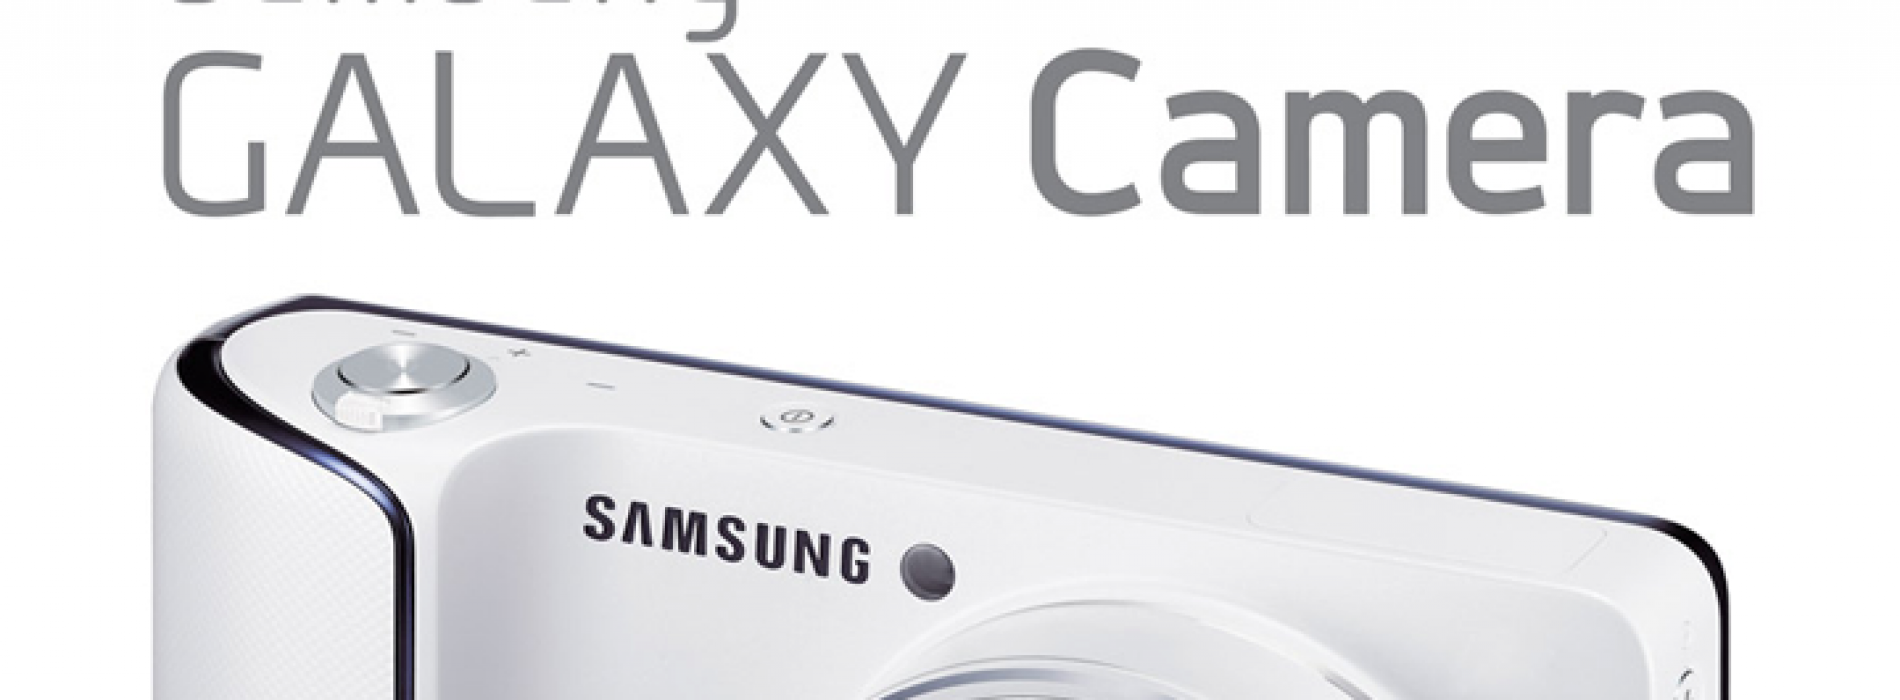 Verizon's Galaxy Camera surfaces on Samsung website